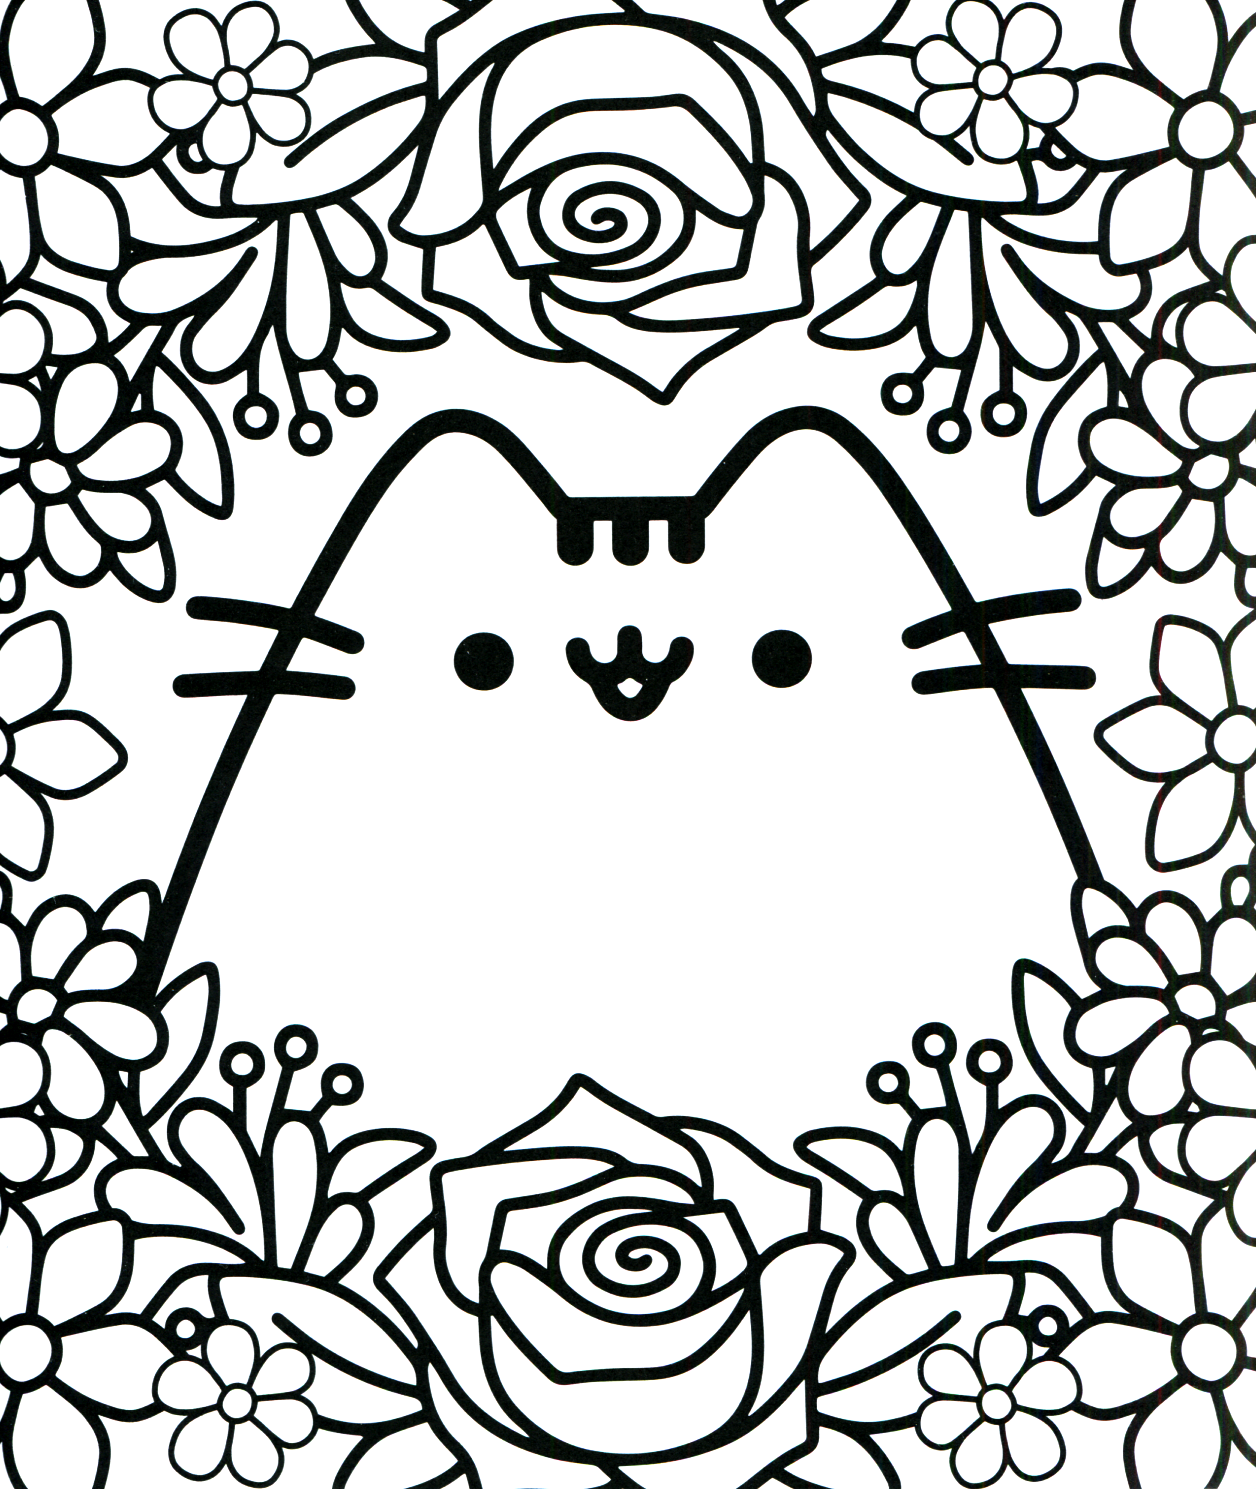 Pusheen Coloring Book Pusheen Pusheen The Cat Pusheen Coloring Pages Cute Coloring Pages Cartoon Coloring Pages